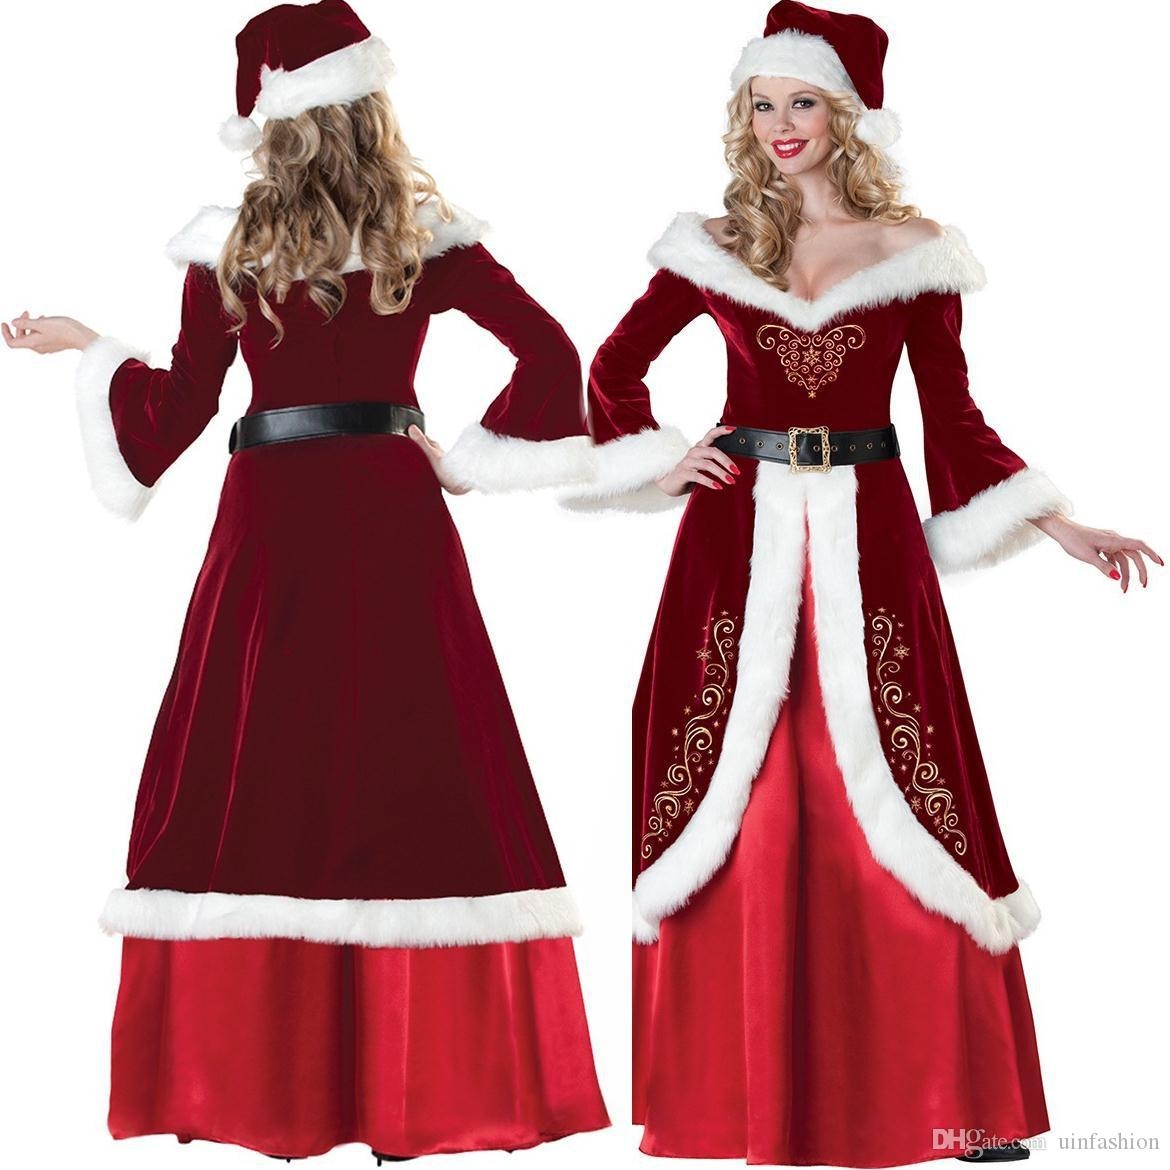 Hot Women Sexy Christmas Cosplay Costumes Festival Party Dress Uniform Santa Clause For Women Sexy Long Dress